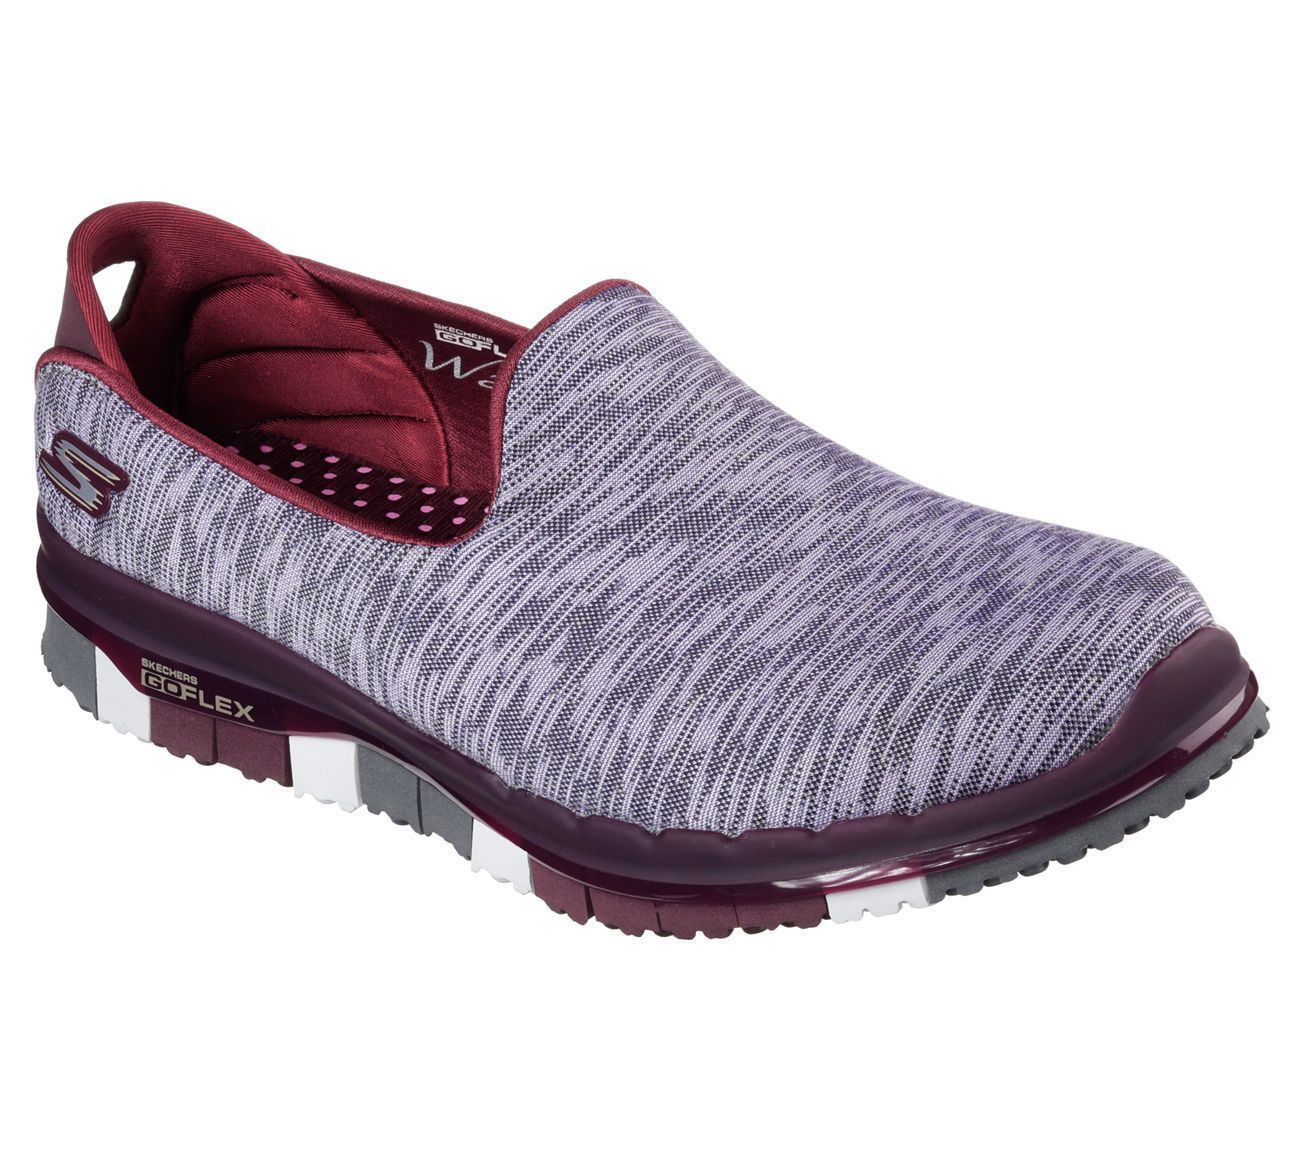 f314265f749d Skechers 14015 BURG Women s GO FLEX WALK - ABILITY Walking ...